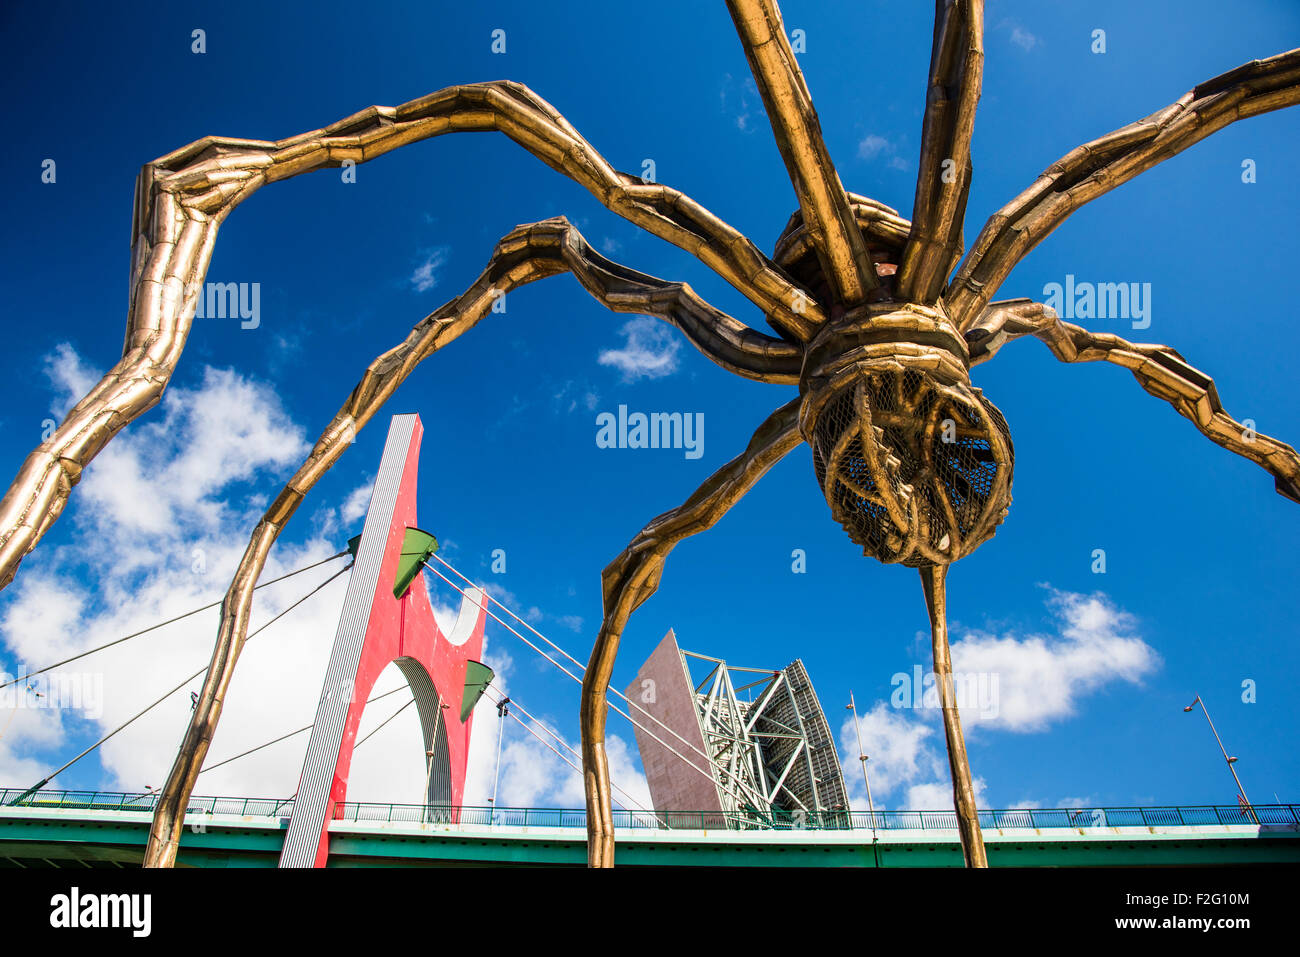 """""""Maman"""" - spider sculpture by Louise Bourgeois with the La Salve Bridge at the background, Bilbao, Biscay, Spain - Stock Image"""